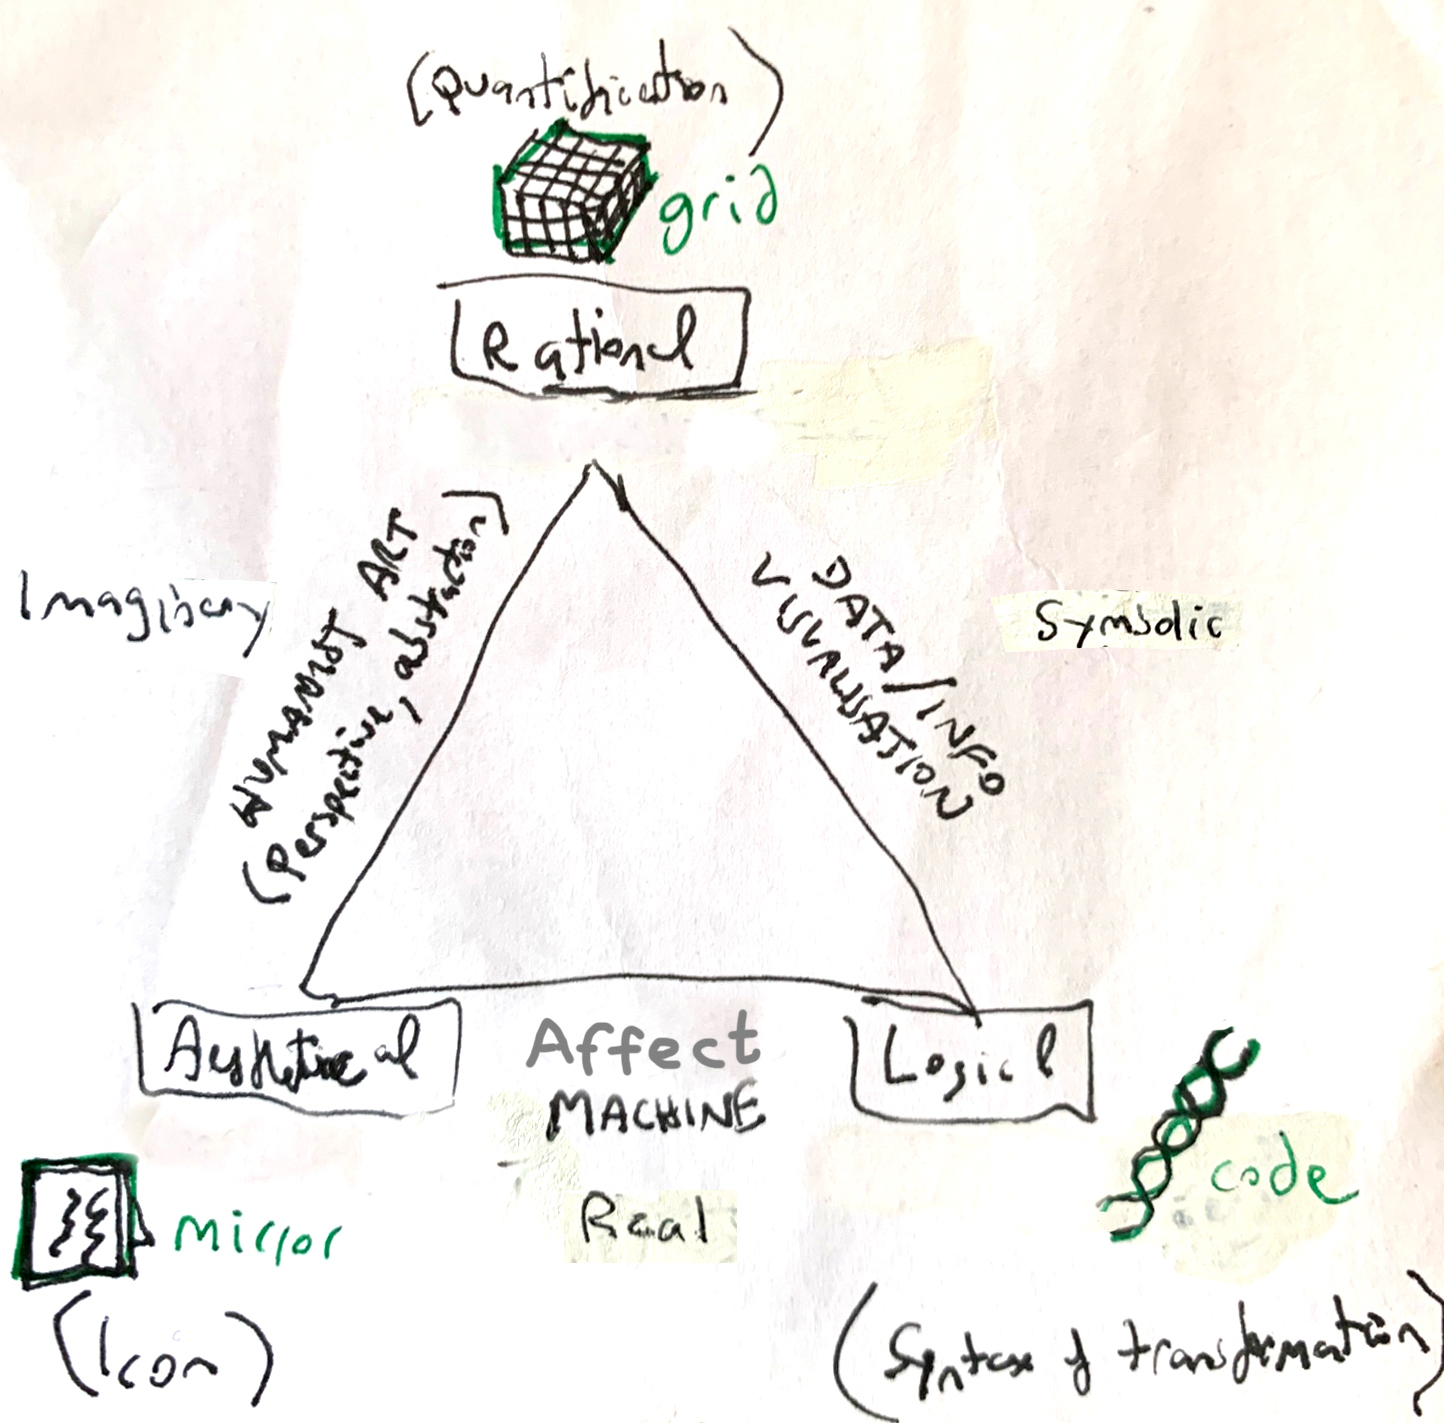 Dean Kenning, Aesthetical-Rational-Logical Diagram, pen and tippex on paper, 2020 (DELTA (Δ) RESEARCH PLACEMENT  4)